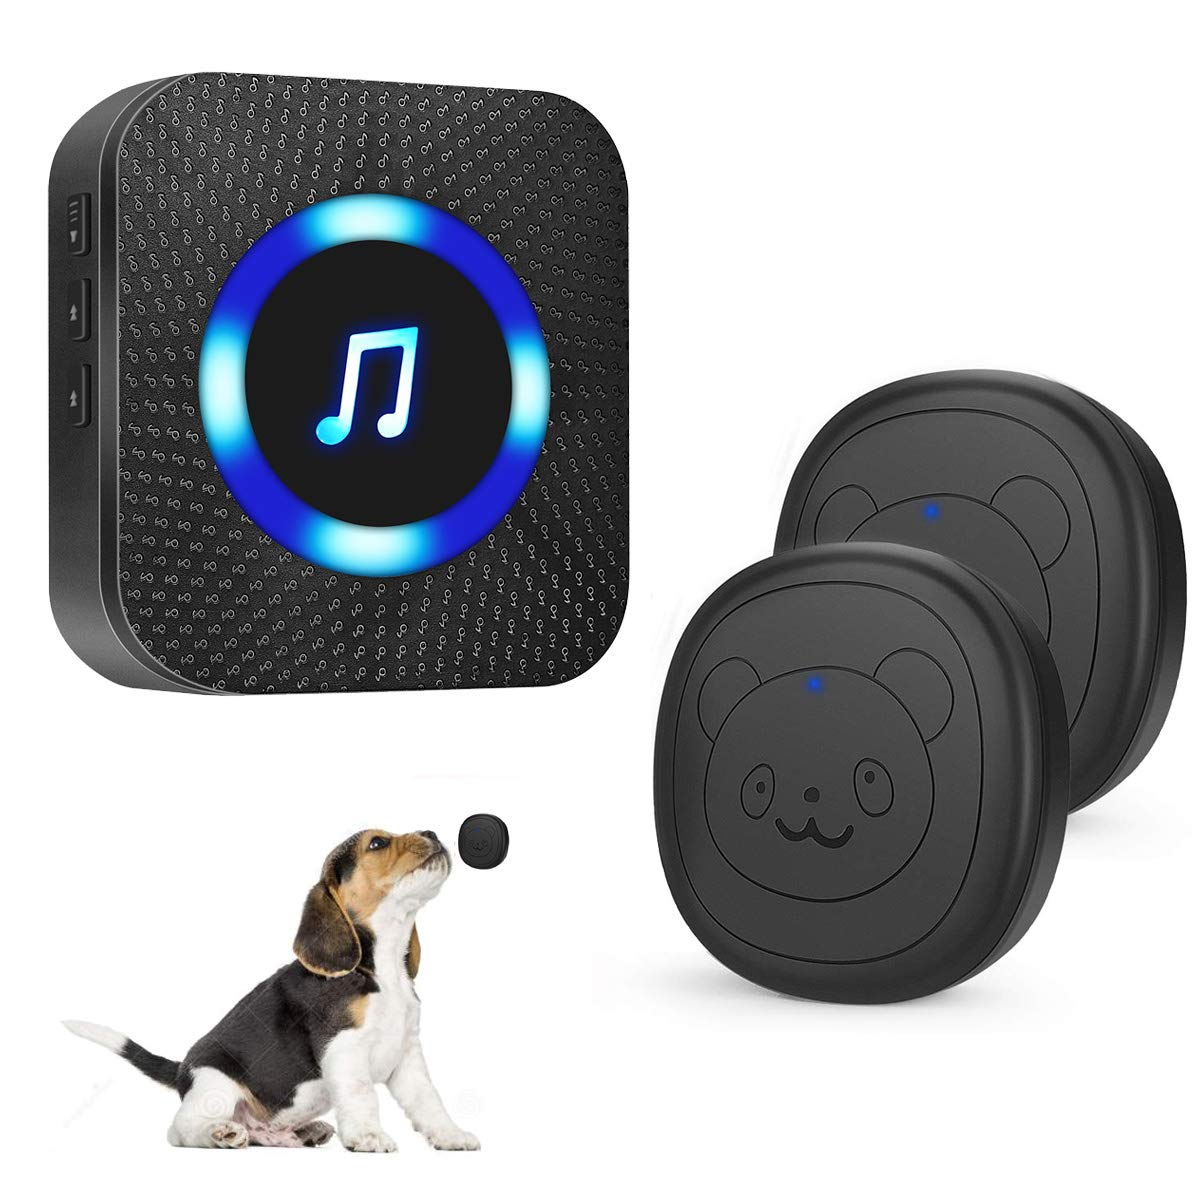 SIARY Dog Door Bell Wireless Doggie doorbells for Potty Training with Warterproof Touch Button Dog Bells Included 1 Receiver + 2 Transmitters by SIARY